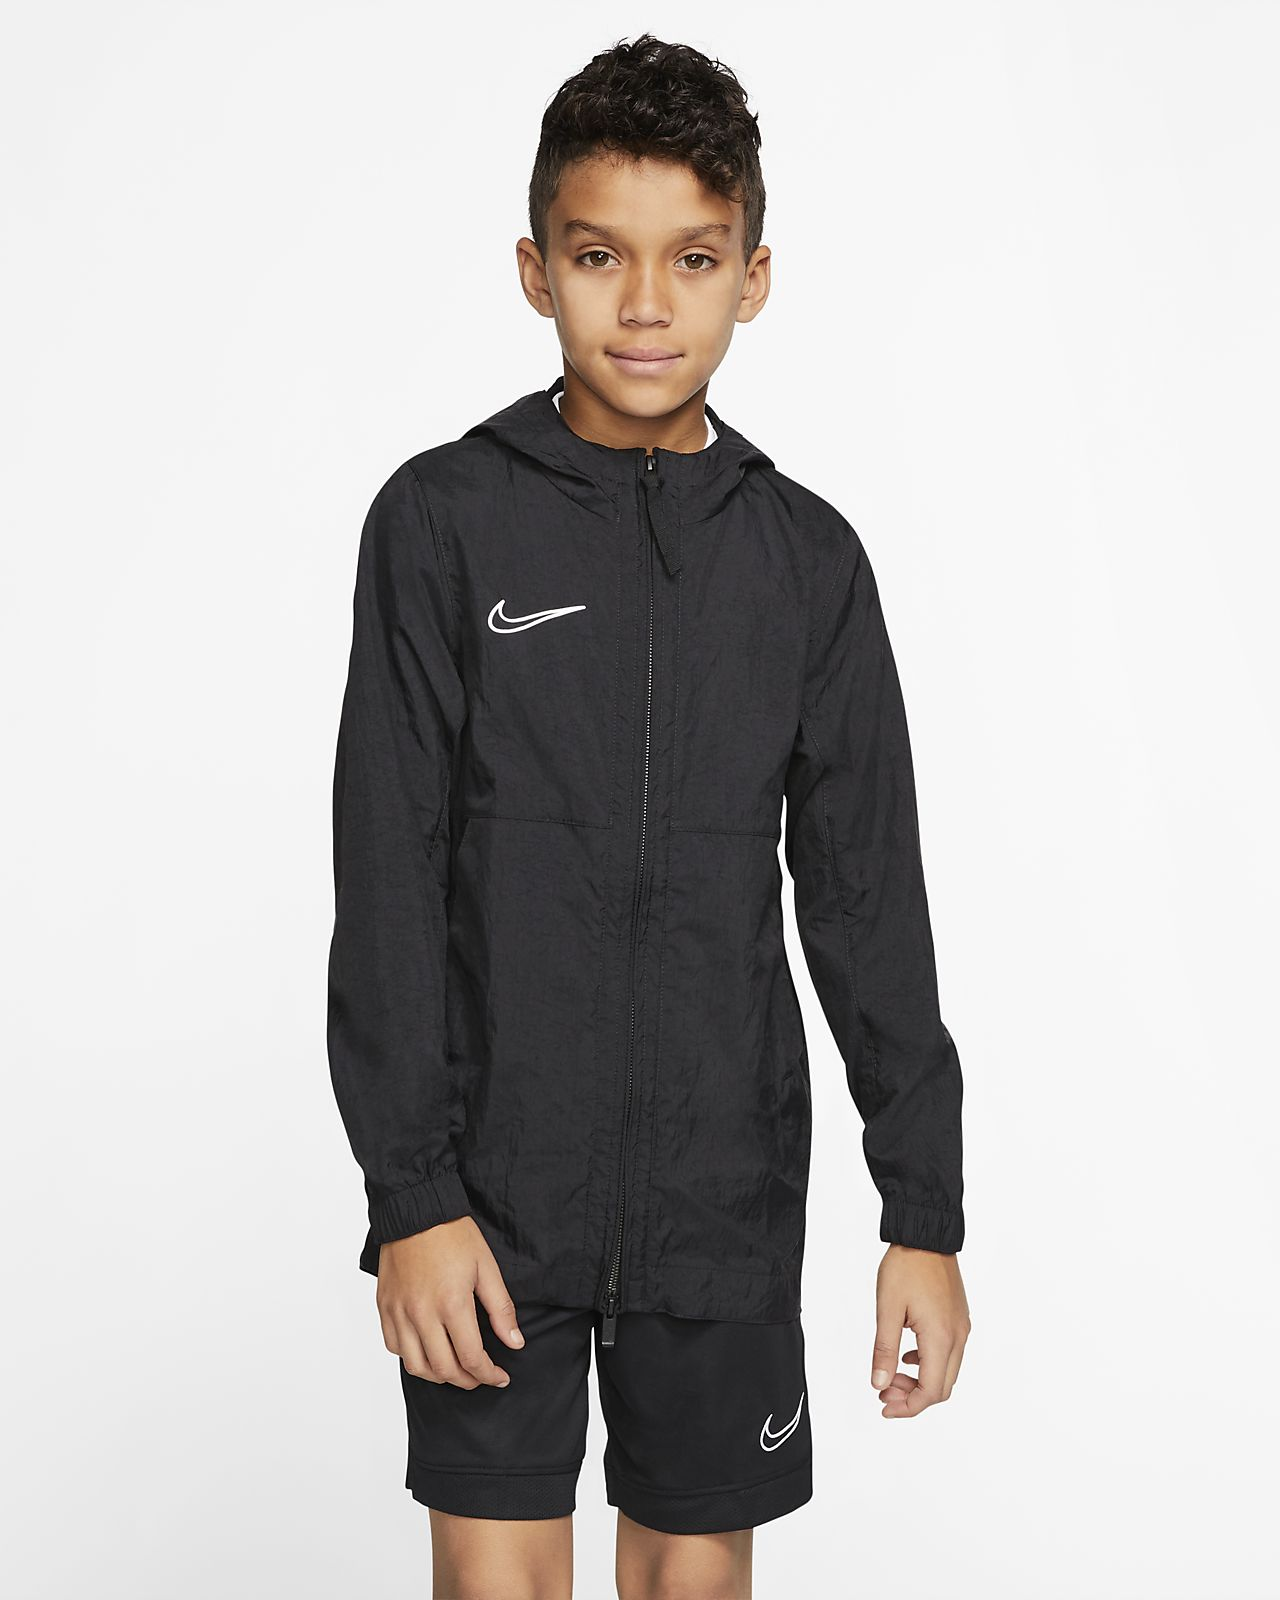 Nike Dri-FIT Academy Big Kids' Soccer Rain Jacket